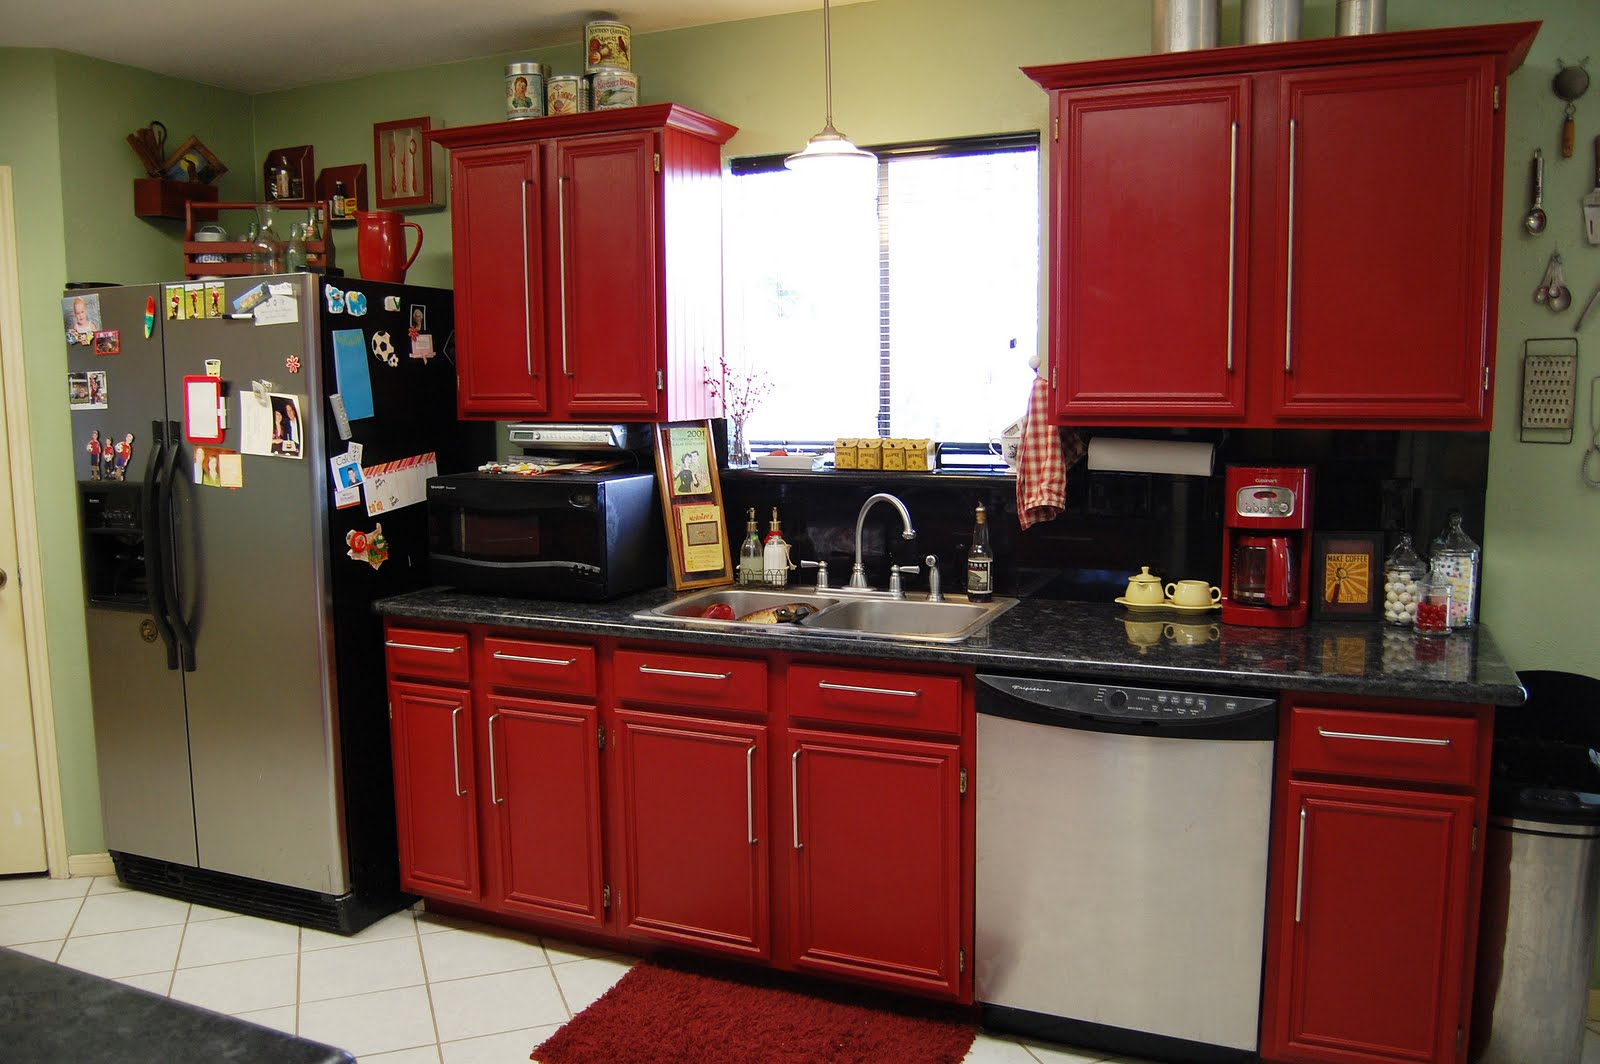 attractive-kitchen-furniture-with-red-kitchen-cabinet-between-small-window-on-calm-wall